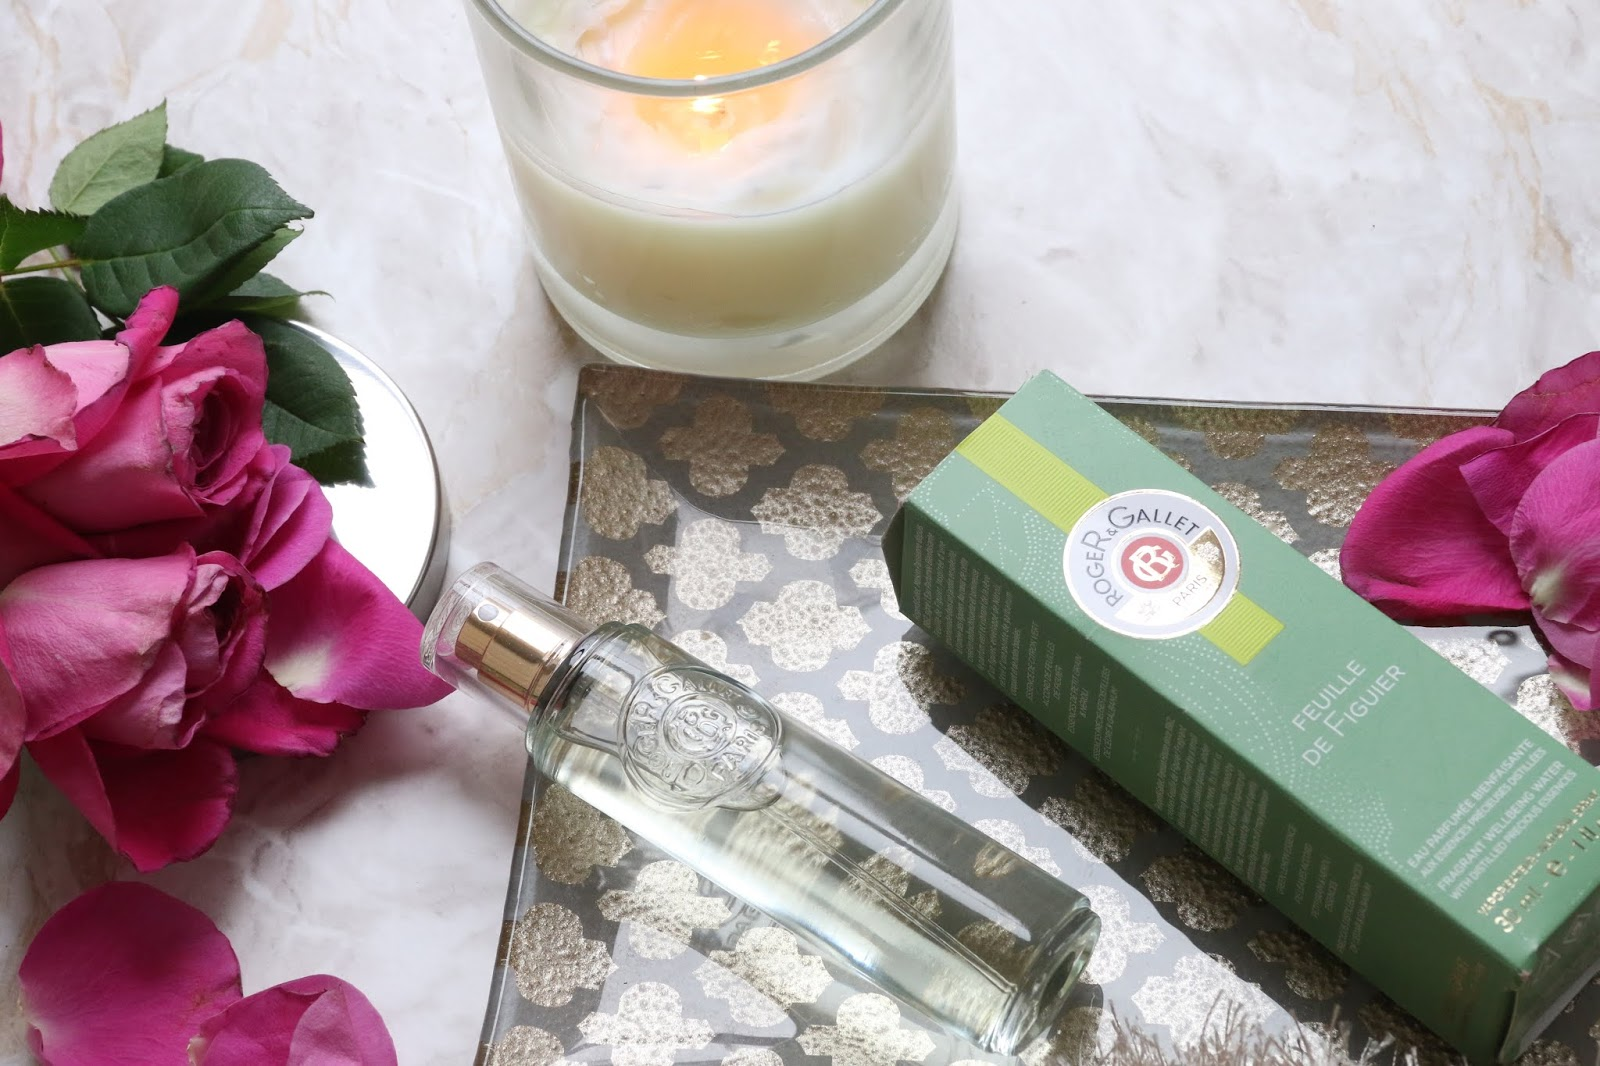 Roger & Gallet Feuille de Figuier Fragrant Wellbeing Water Review